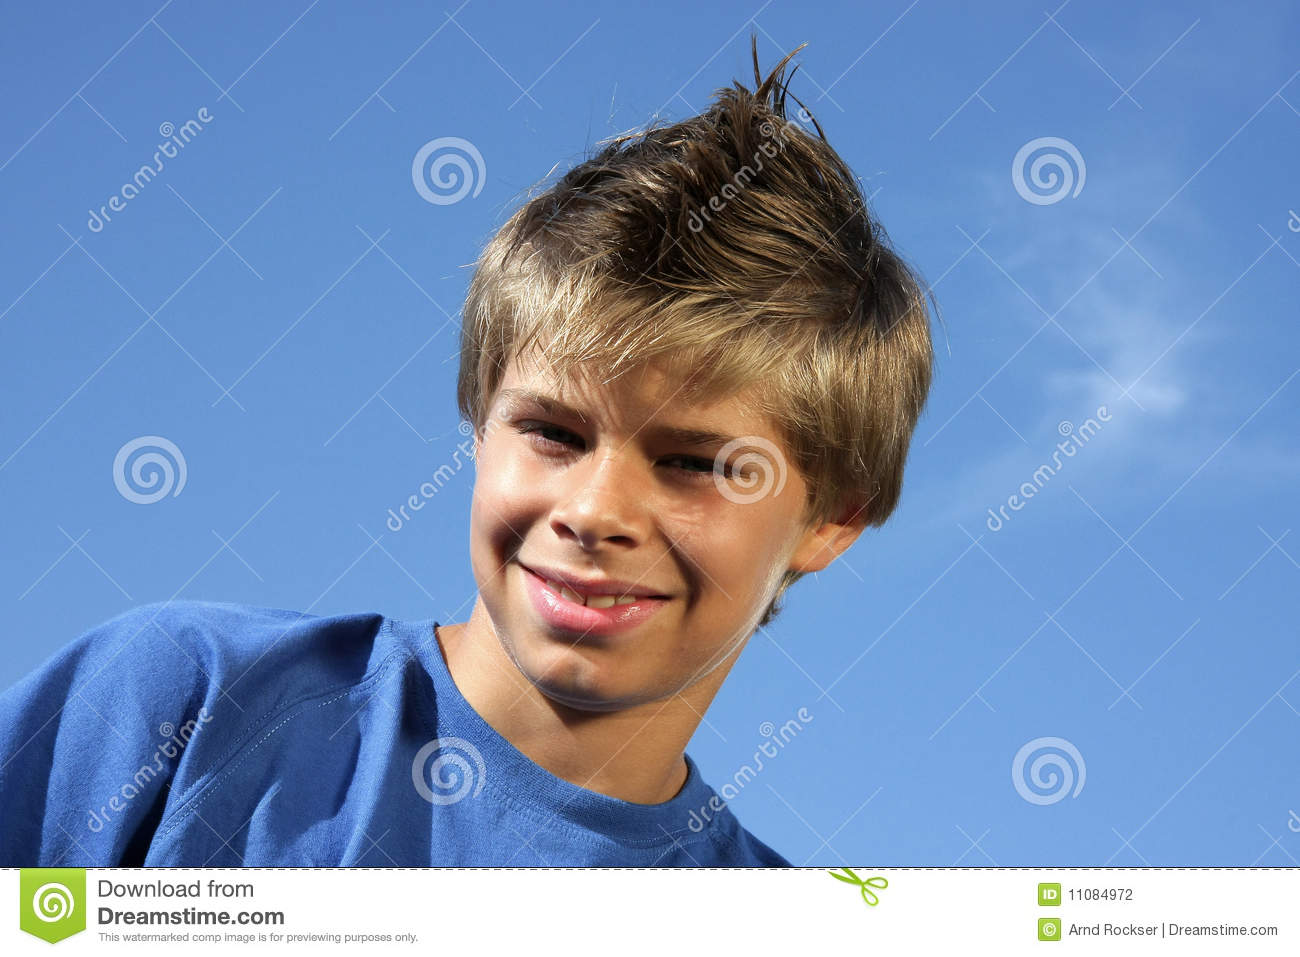 Cute Boy With Fashionable Hairstyle Stock Photo Image Of Boys